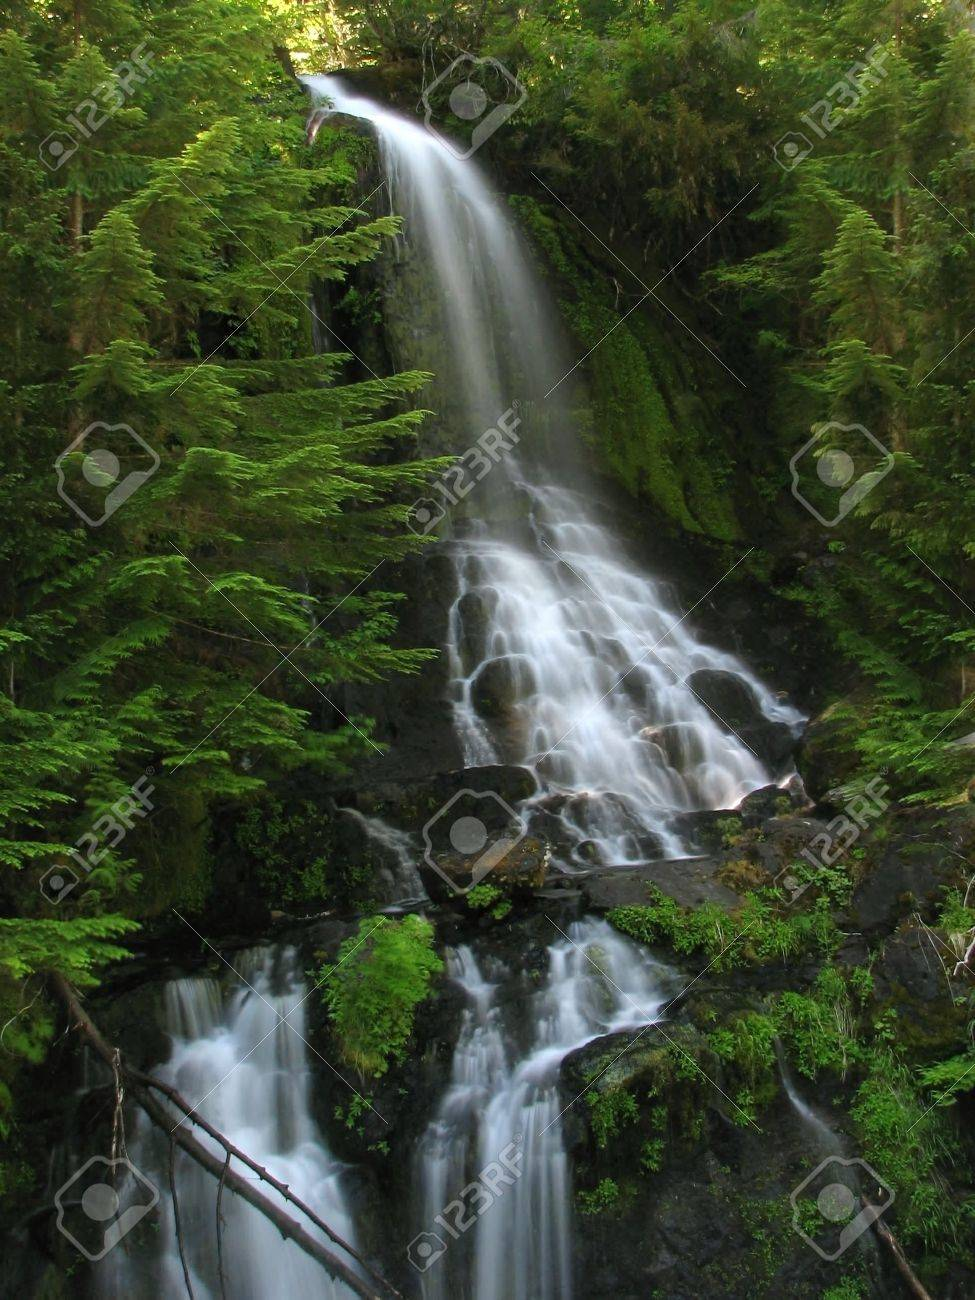 Waterfall in lush, green forest Stock Photo - 3008342